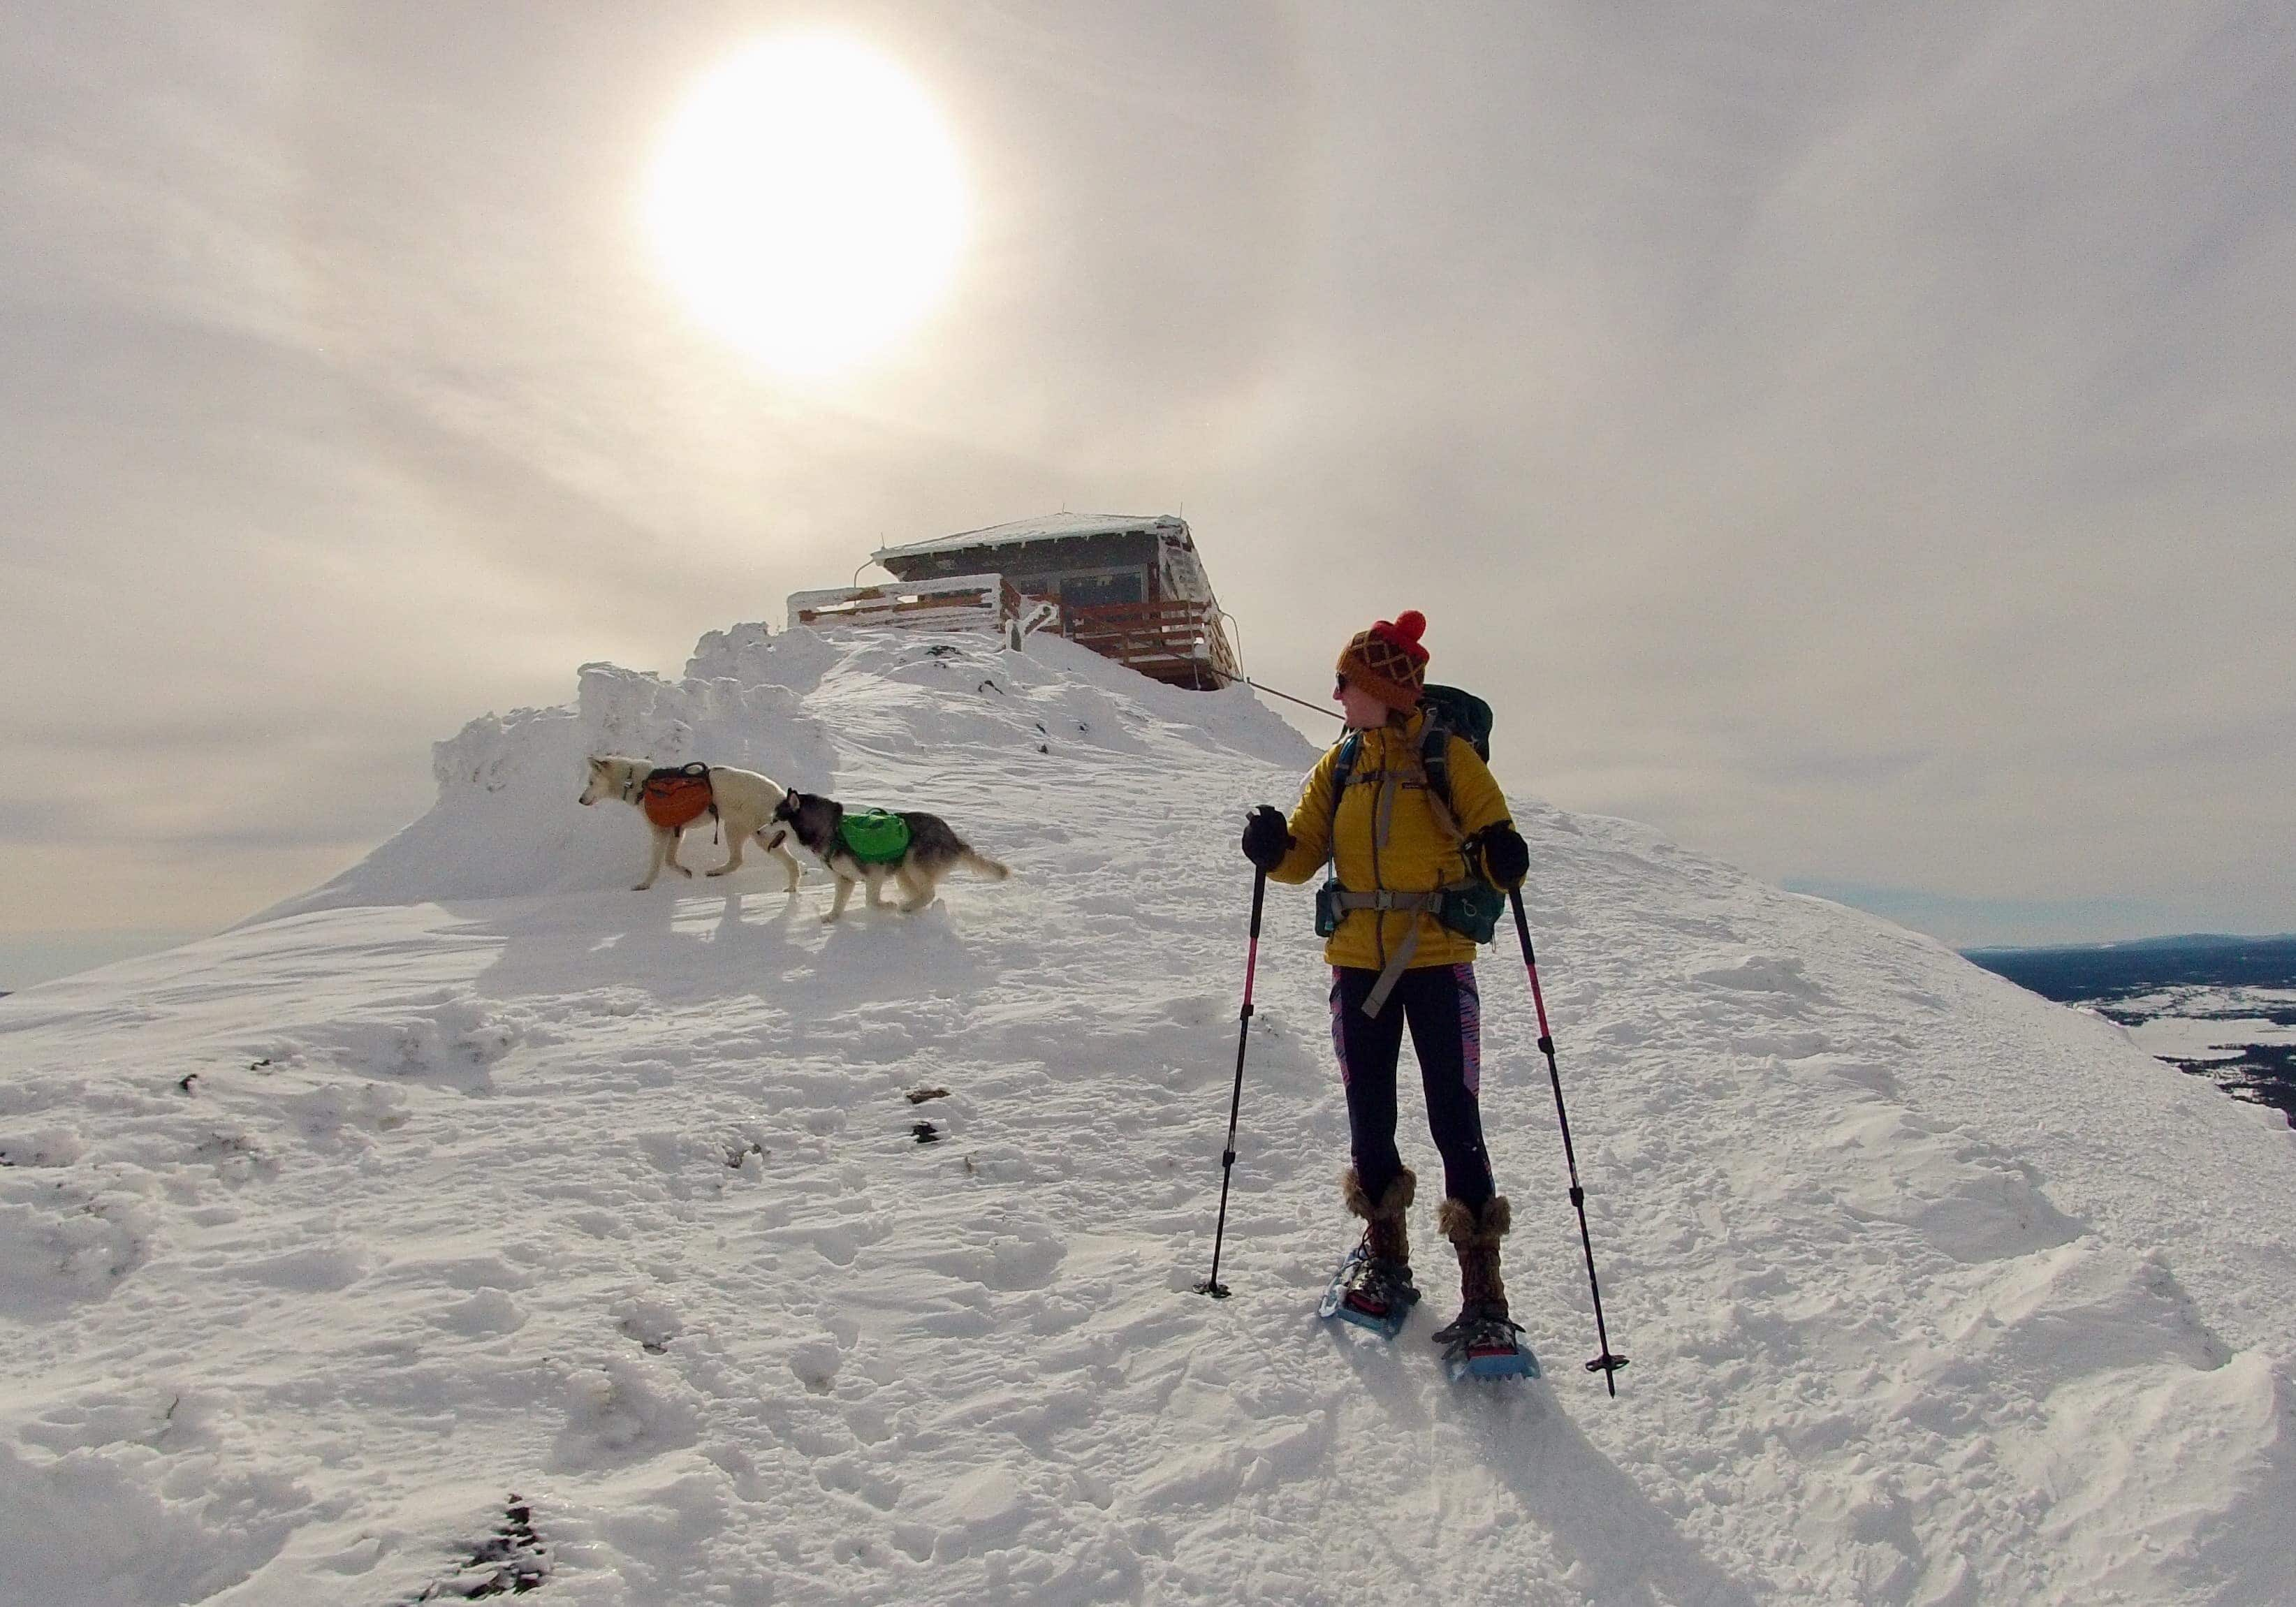 Girl on skis on snowy hill below lookout, dogs behind her